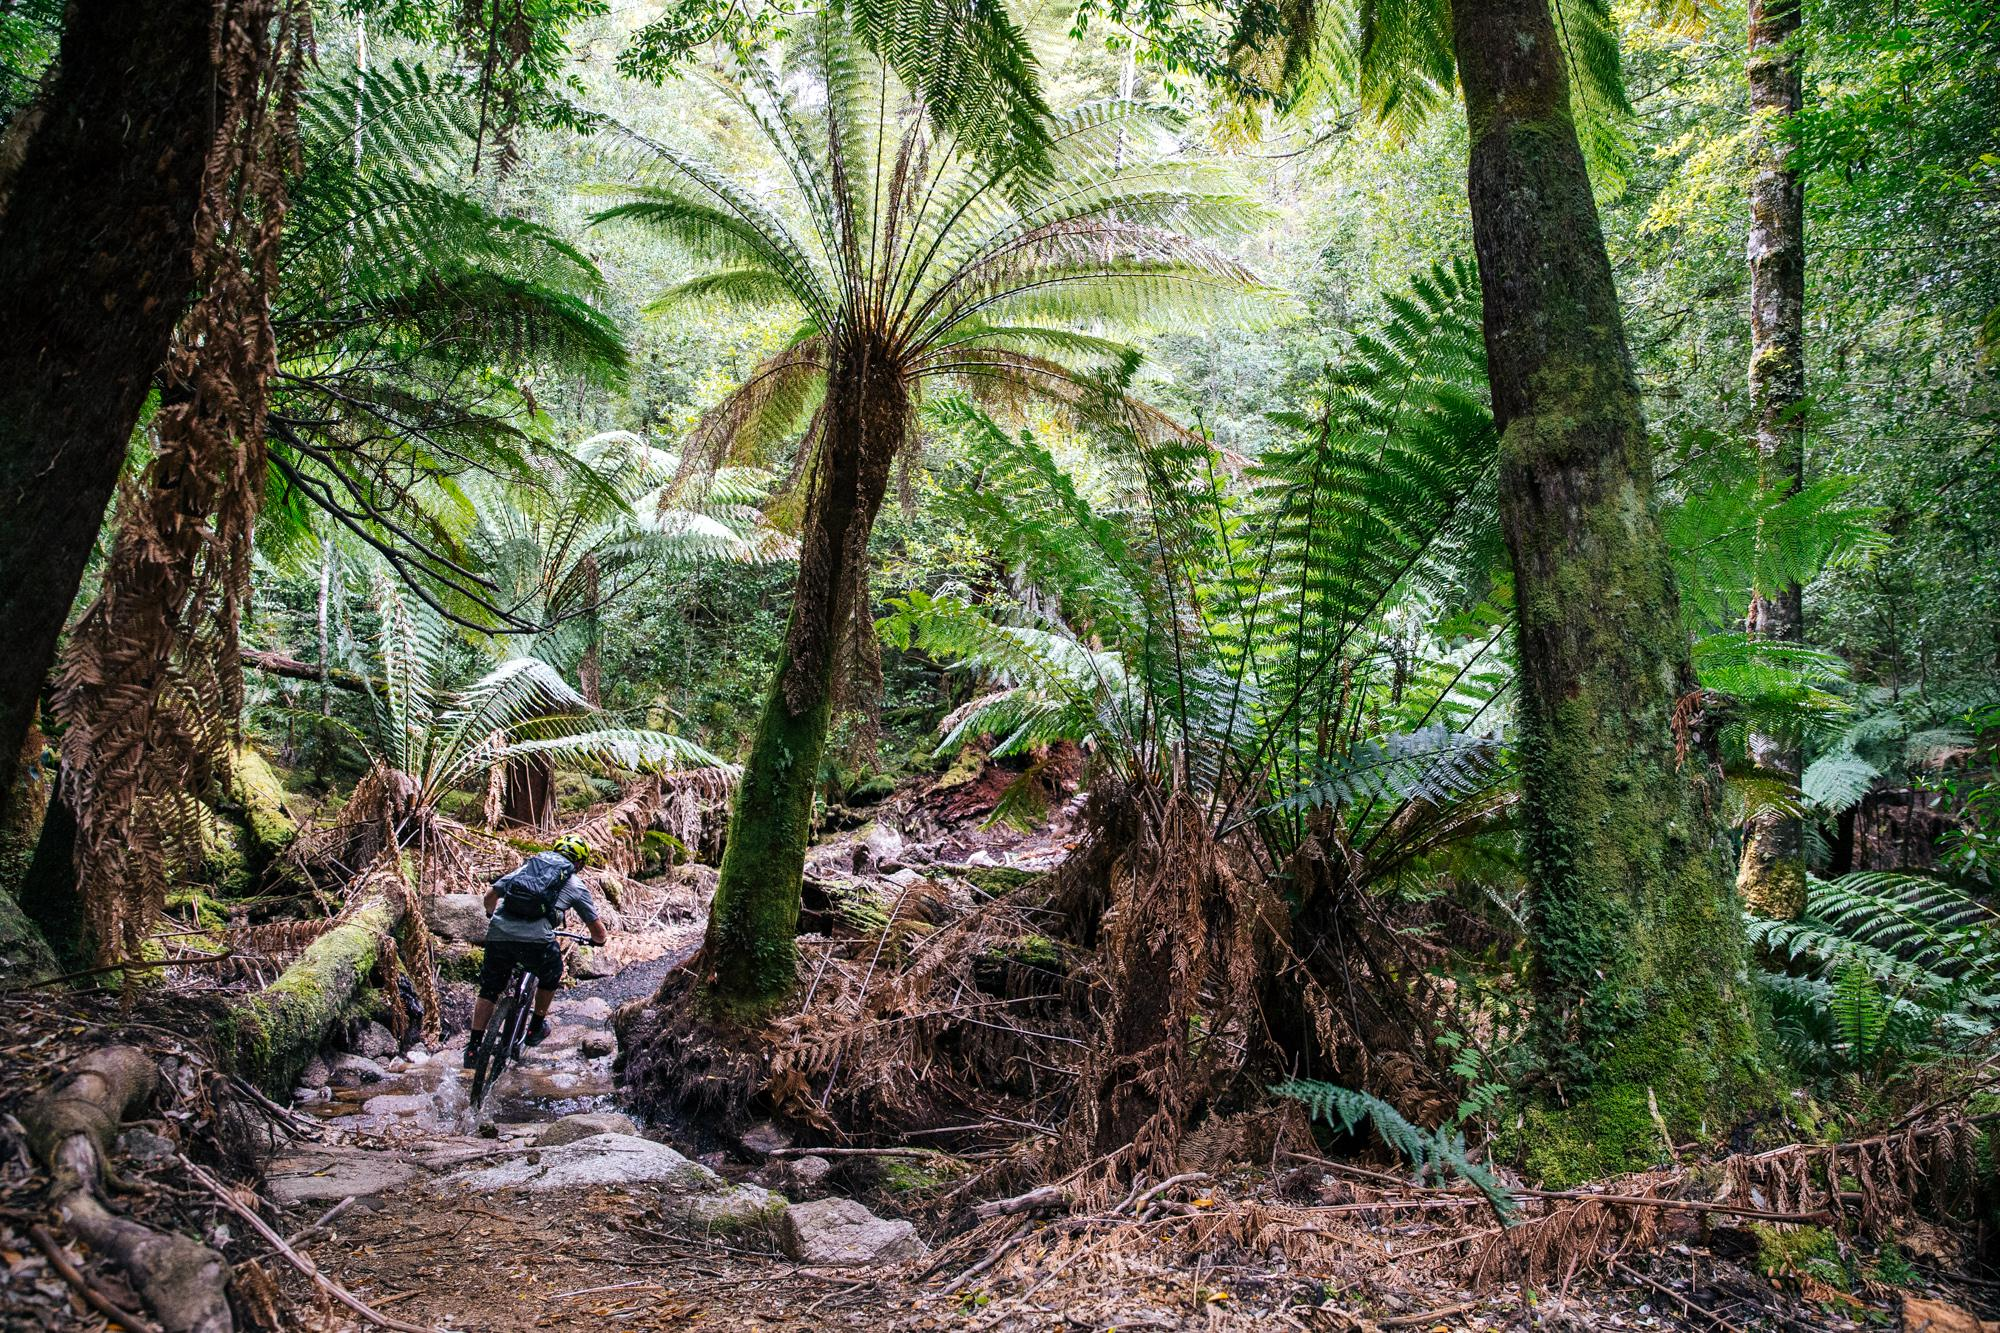 These Tassie Tree Ferns grow a centimeter a year...